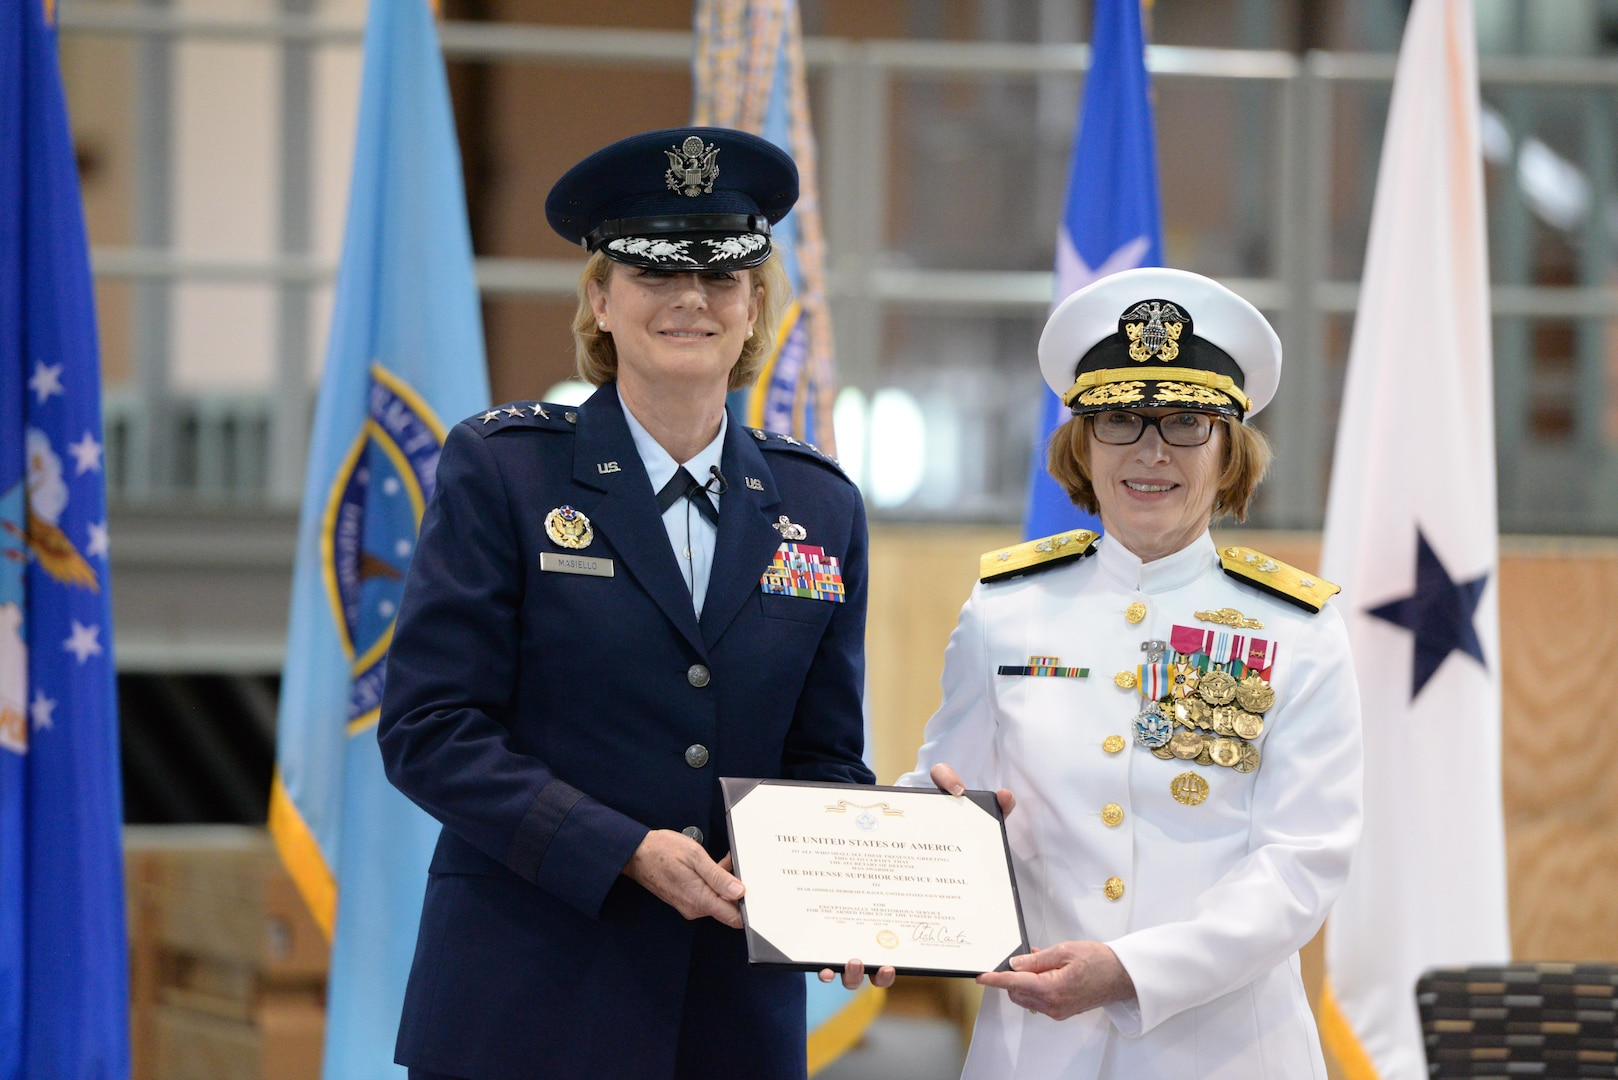 Defense Contract Management Agency director, Air Force Lt. Gen. Wendy Masiello, awards the Navy Defense Superior Service Medal to Navy Rear Adm. Deborah Haven for her three years of service as the DCMA International commander during a change of command ceremony at Fort Lee, Virginia, May 23. Haven will continue her service with the agency as the chief of staff.